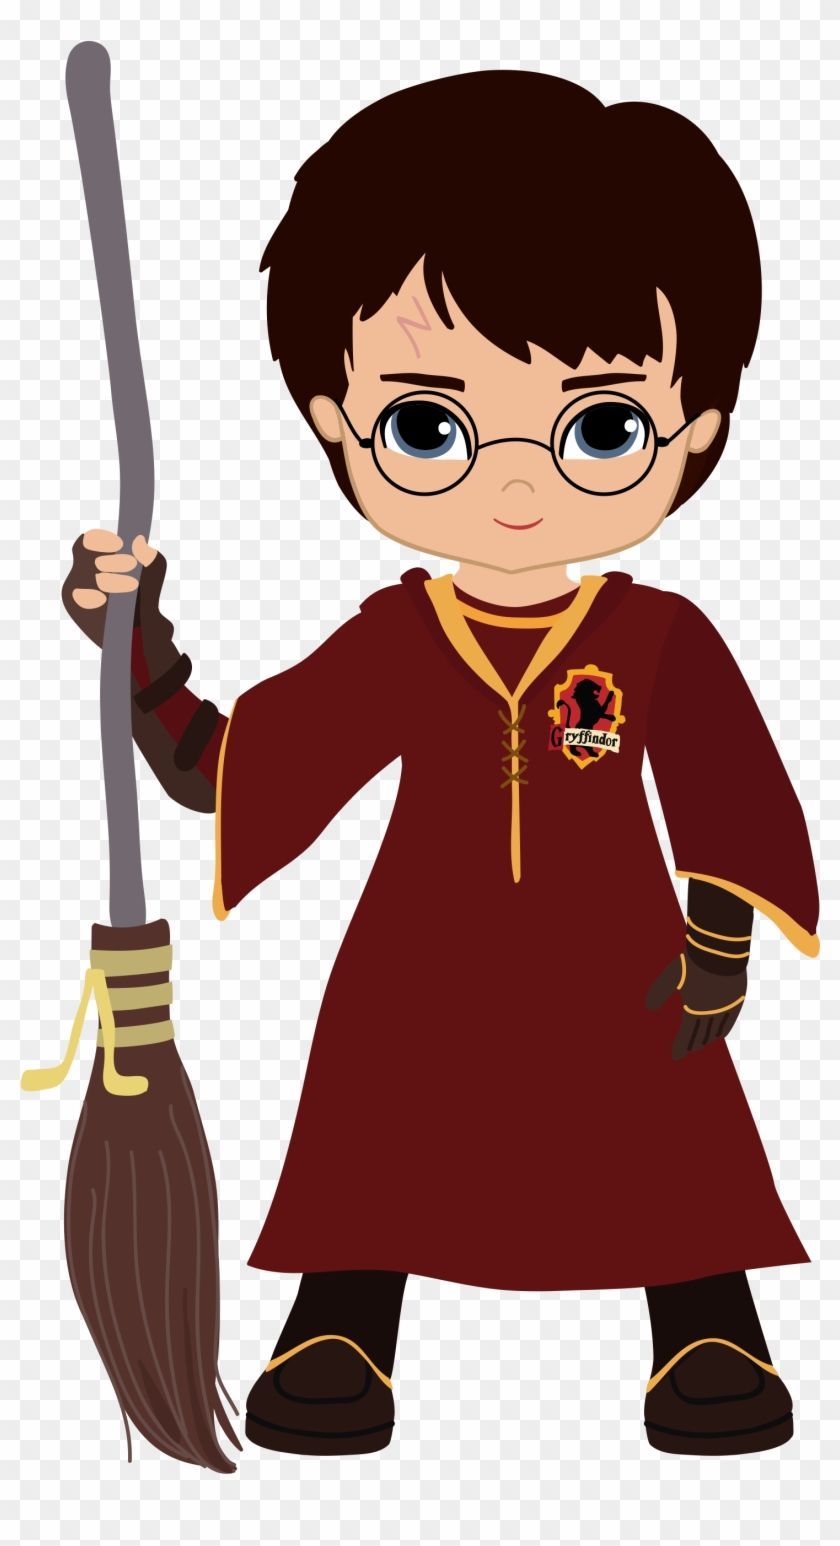 Download And Share Clipart About Harry Pinteres Harry Potter Clip Art Find More High Qualit In 2021 Harry Potter Cartoon Harry Potter Clip Art Harry Potter Drawings